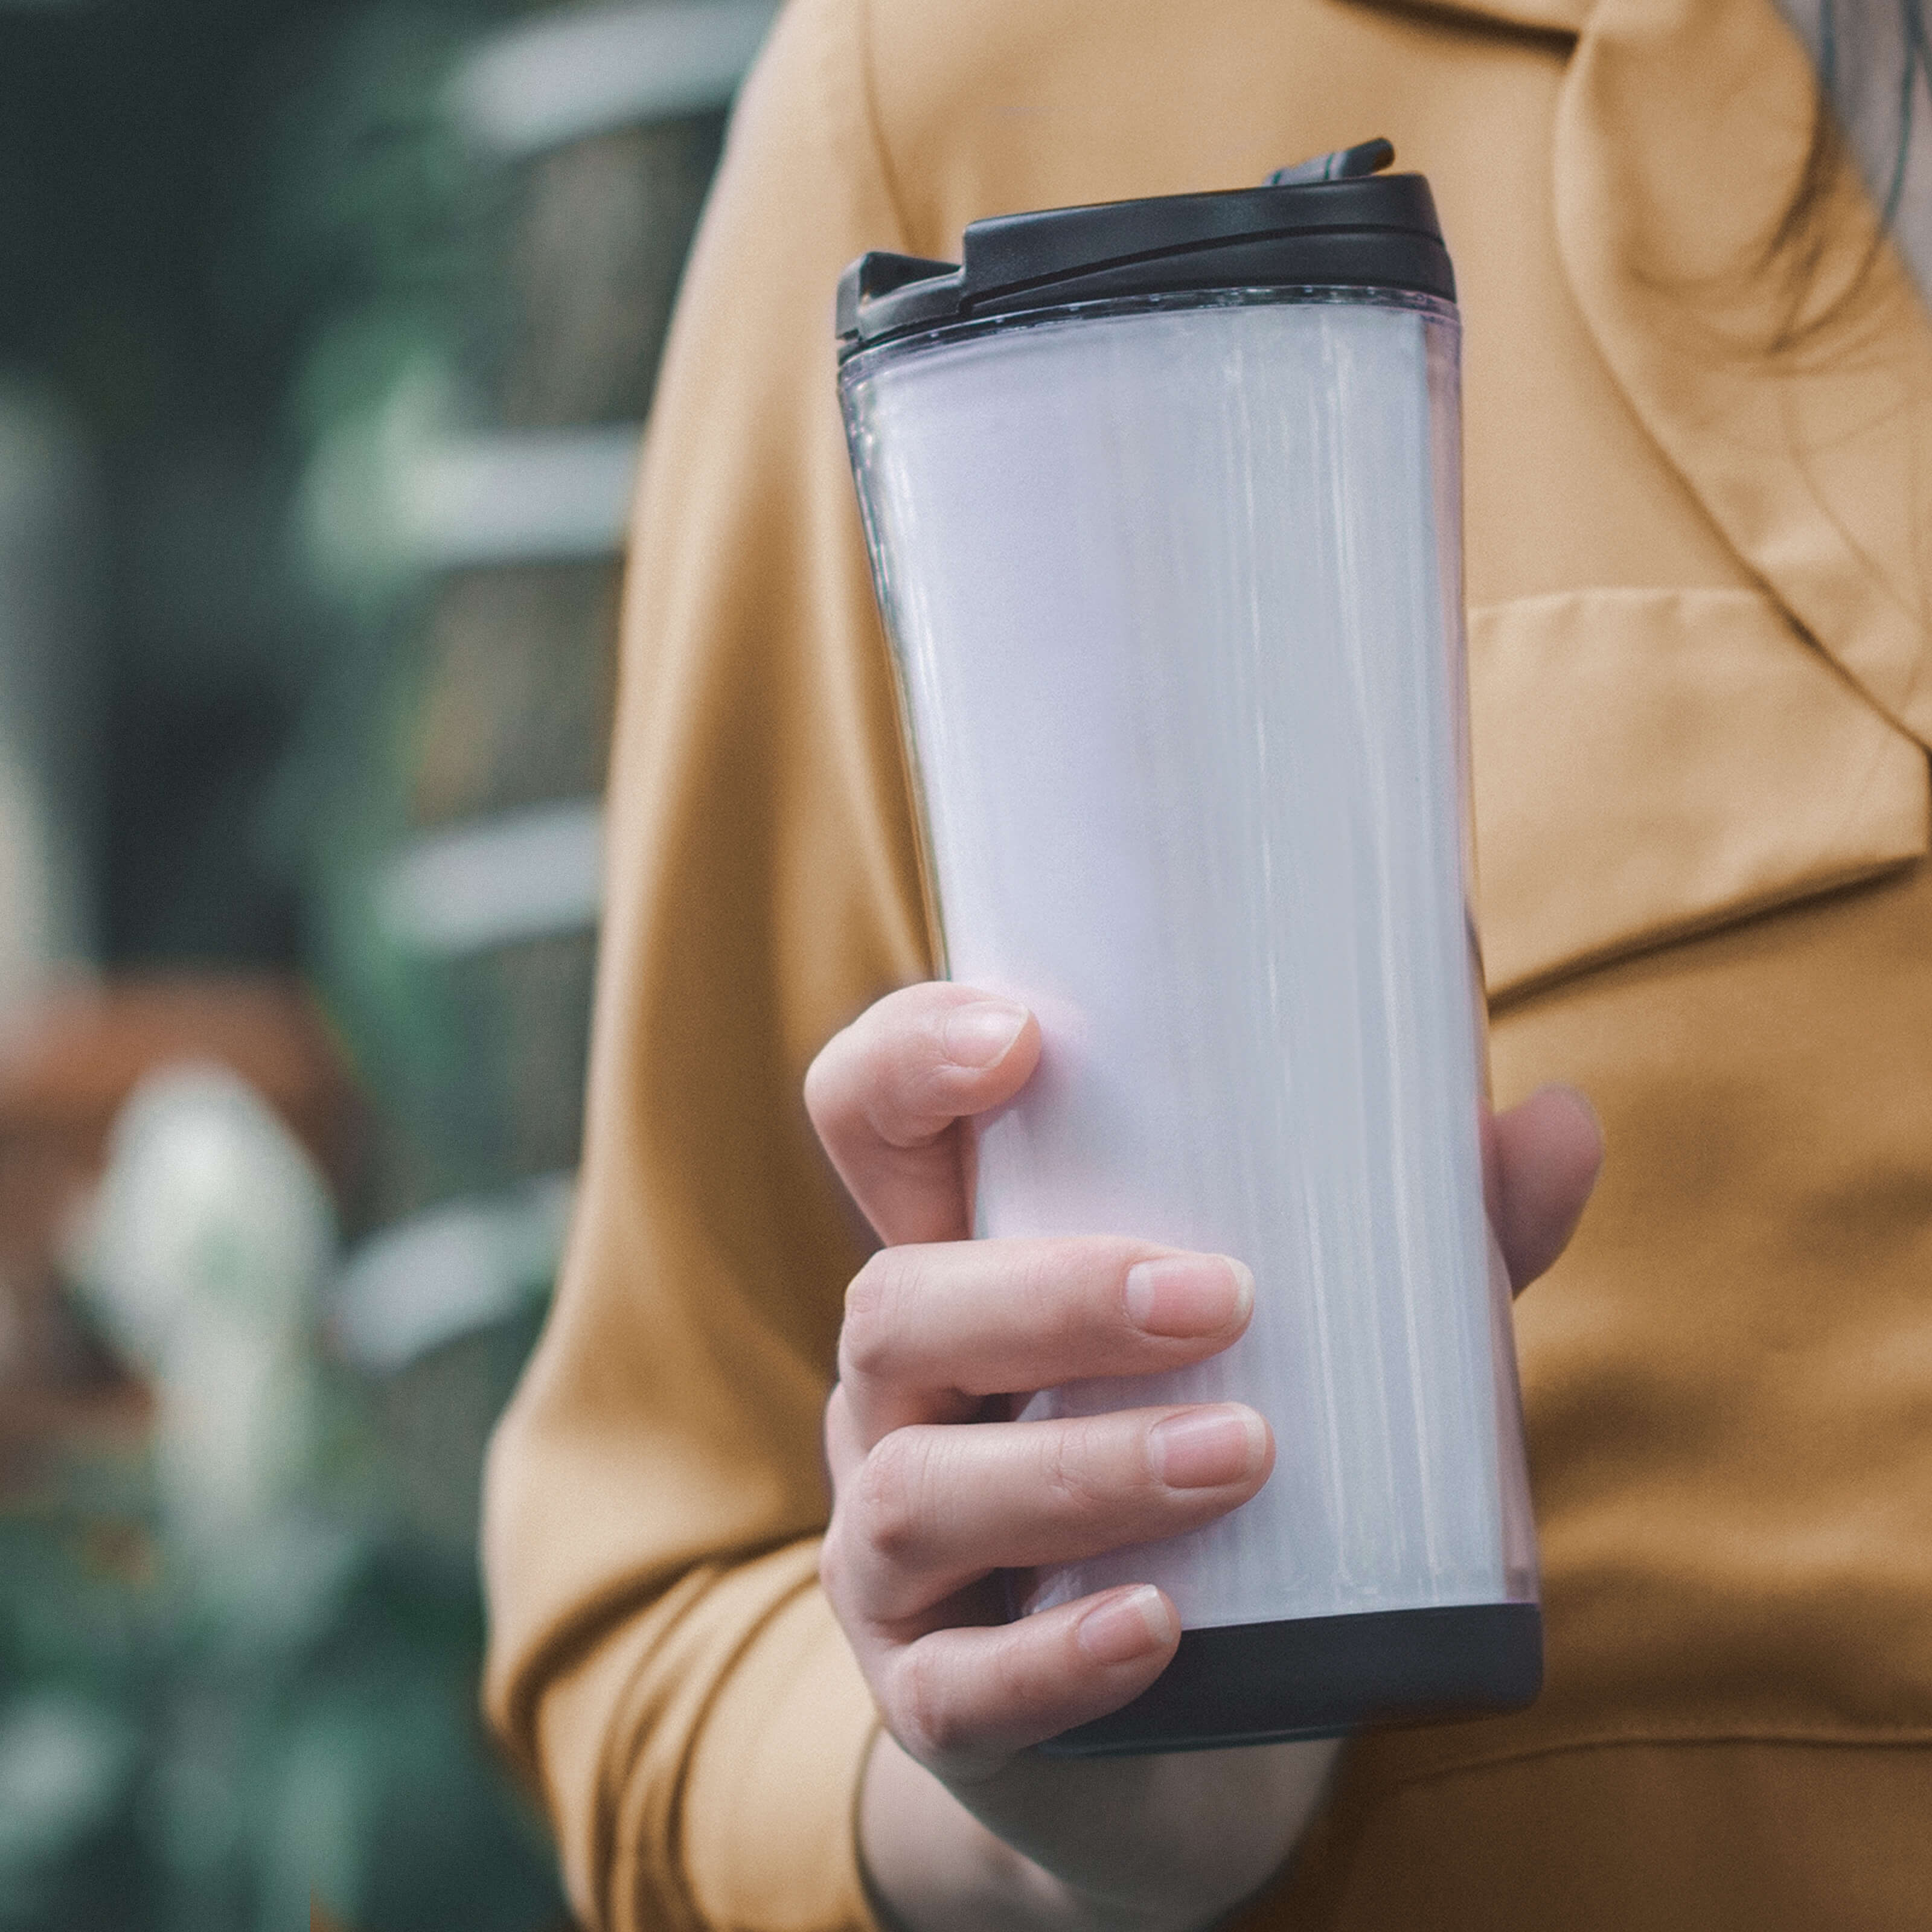 Why Bringing Reusable Cups to Cafes Hasn't Taken Off